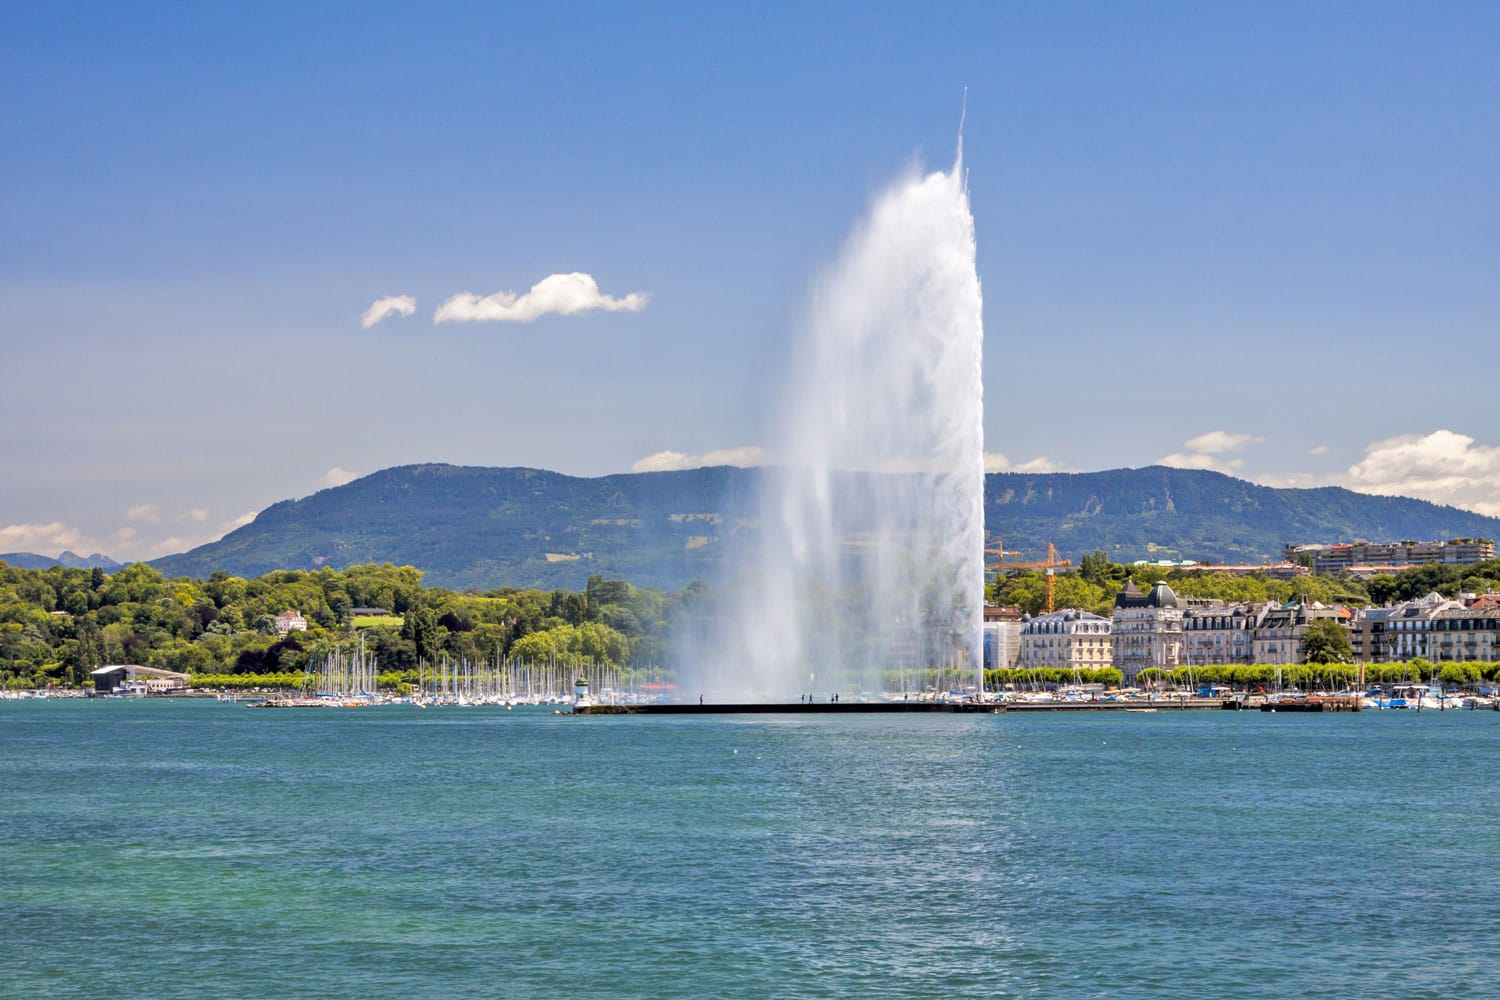 Panorama of the southern Lake Geneva shore and of the famous jet d'eau (water jet) fontain in Canton Geneva, Switzerland